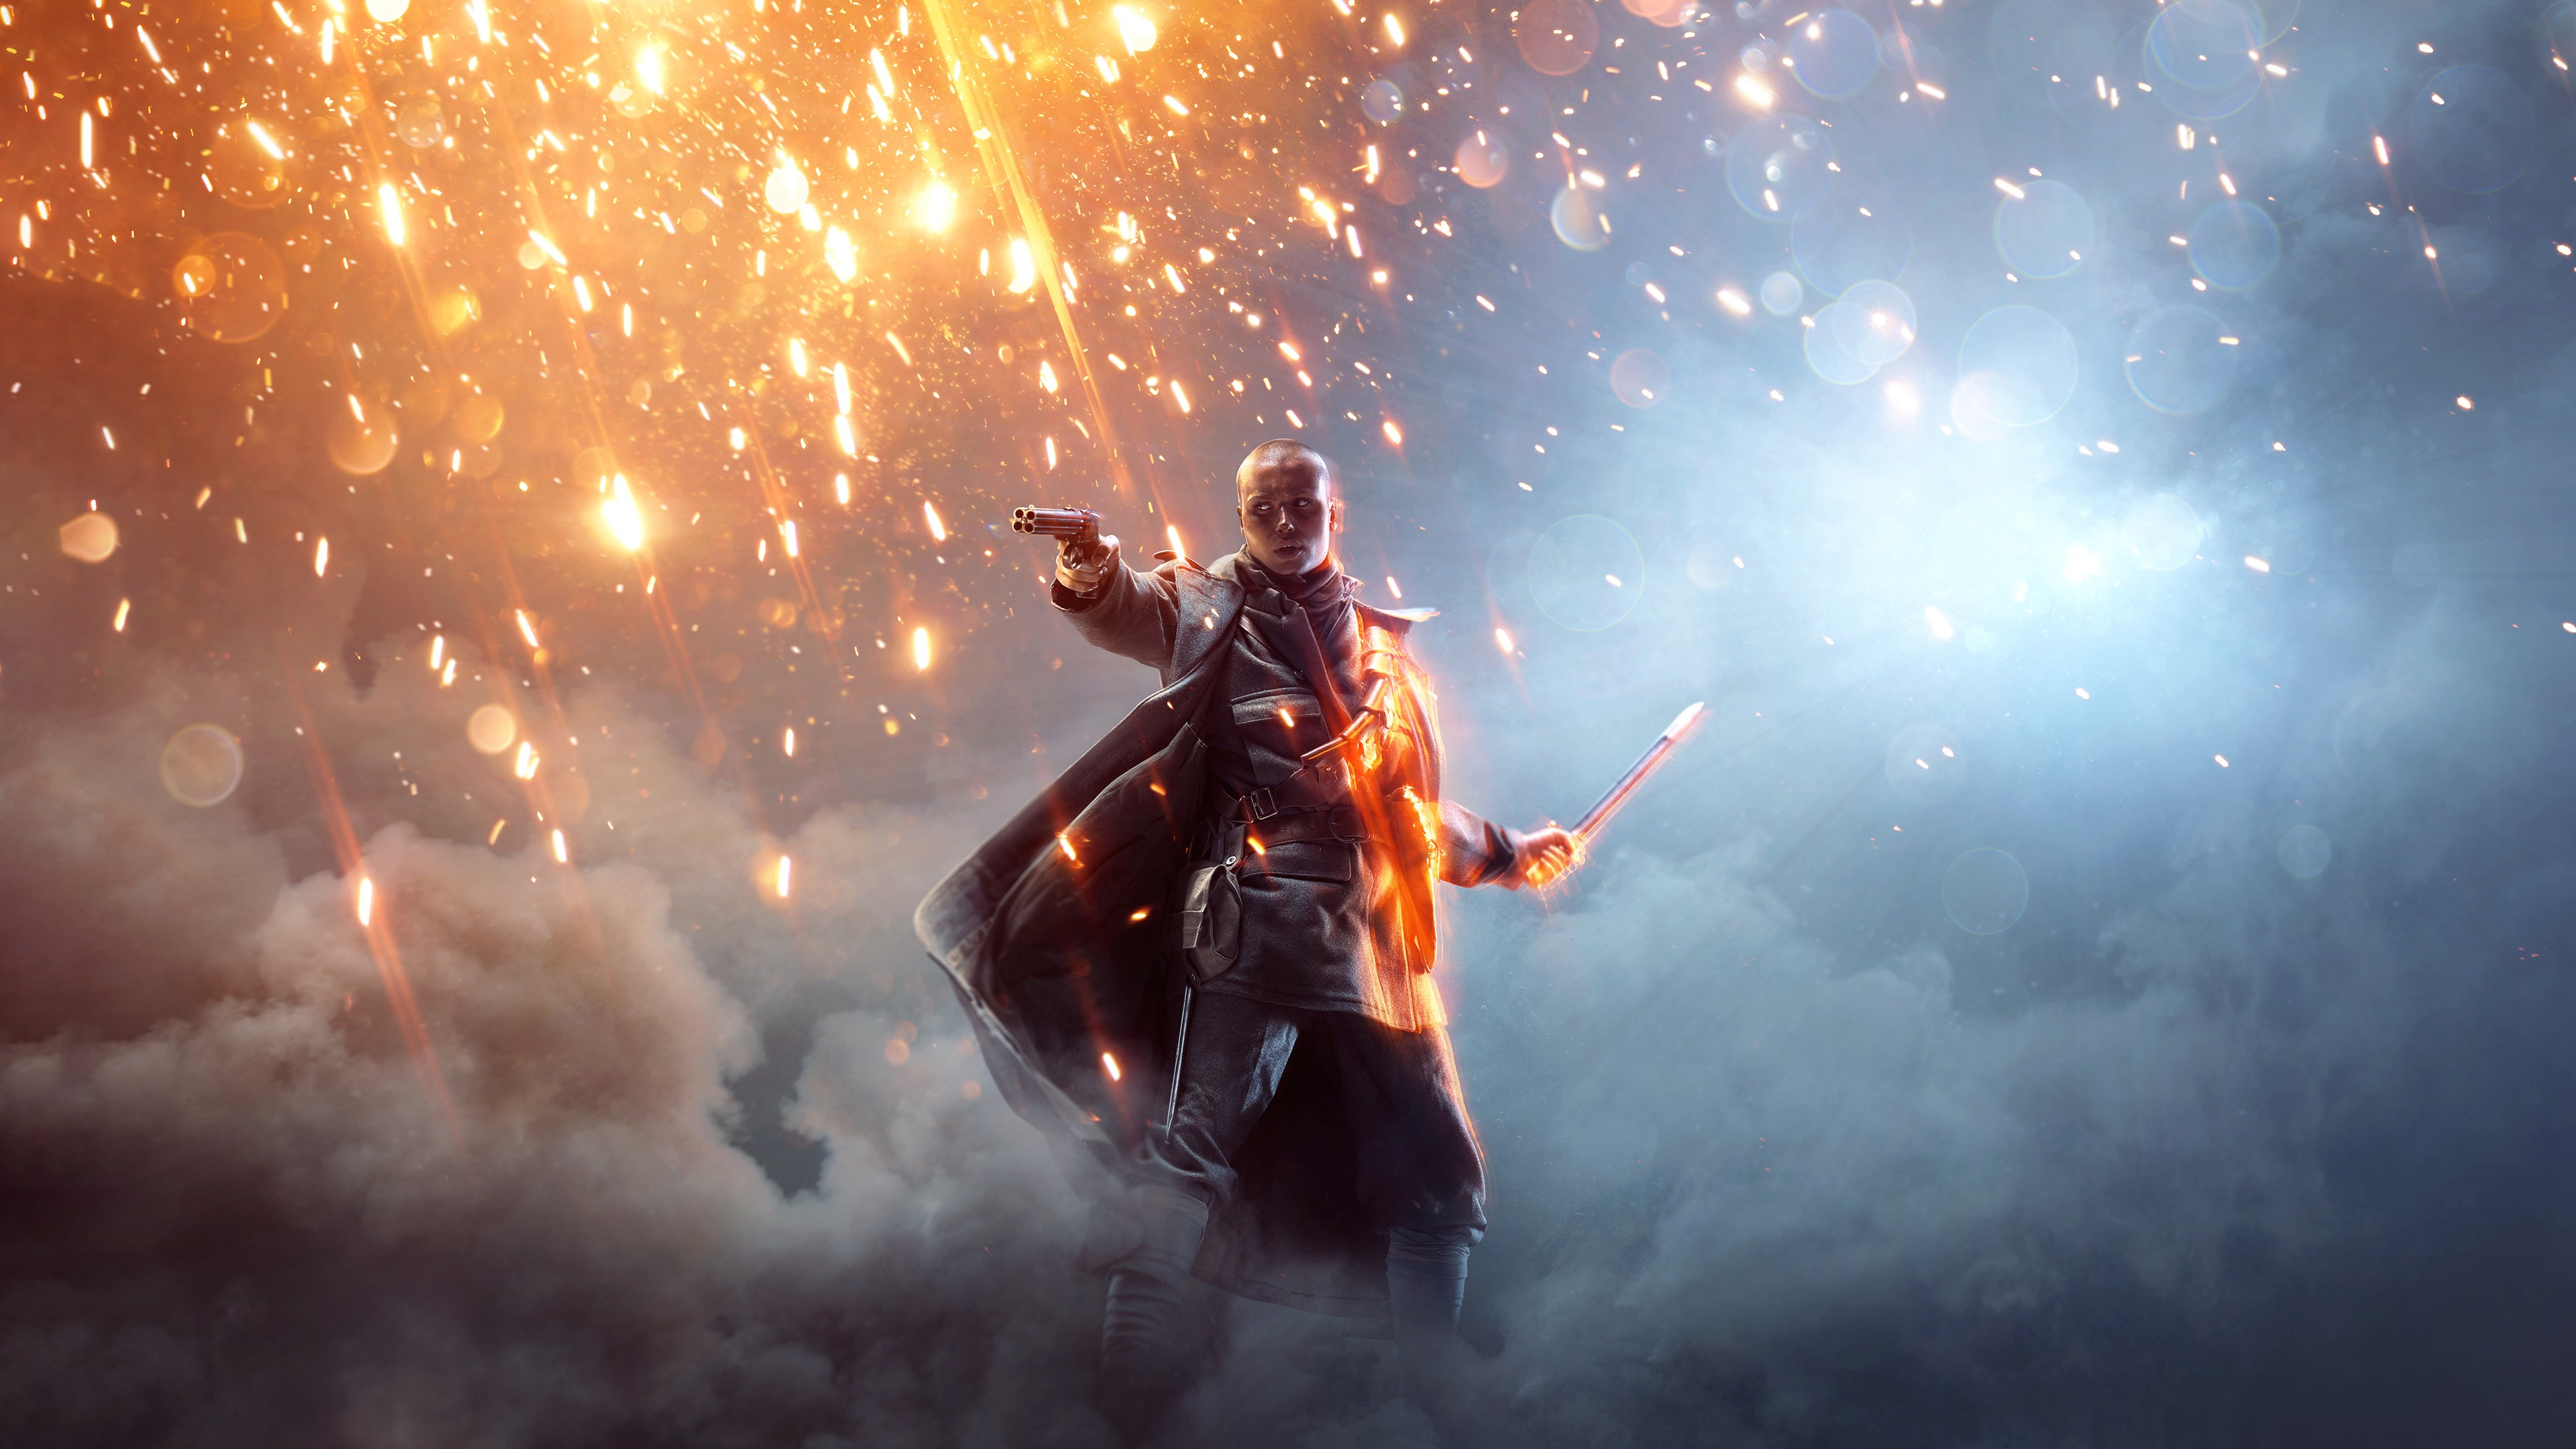 Hd Gaming Wallpapers 4k Hd Wallpapers Hd Gaming: Wallpaper Battlefield 1, Poster, 4k, Games #15573